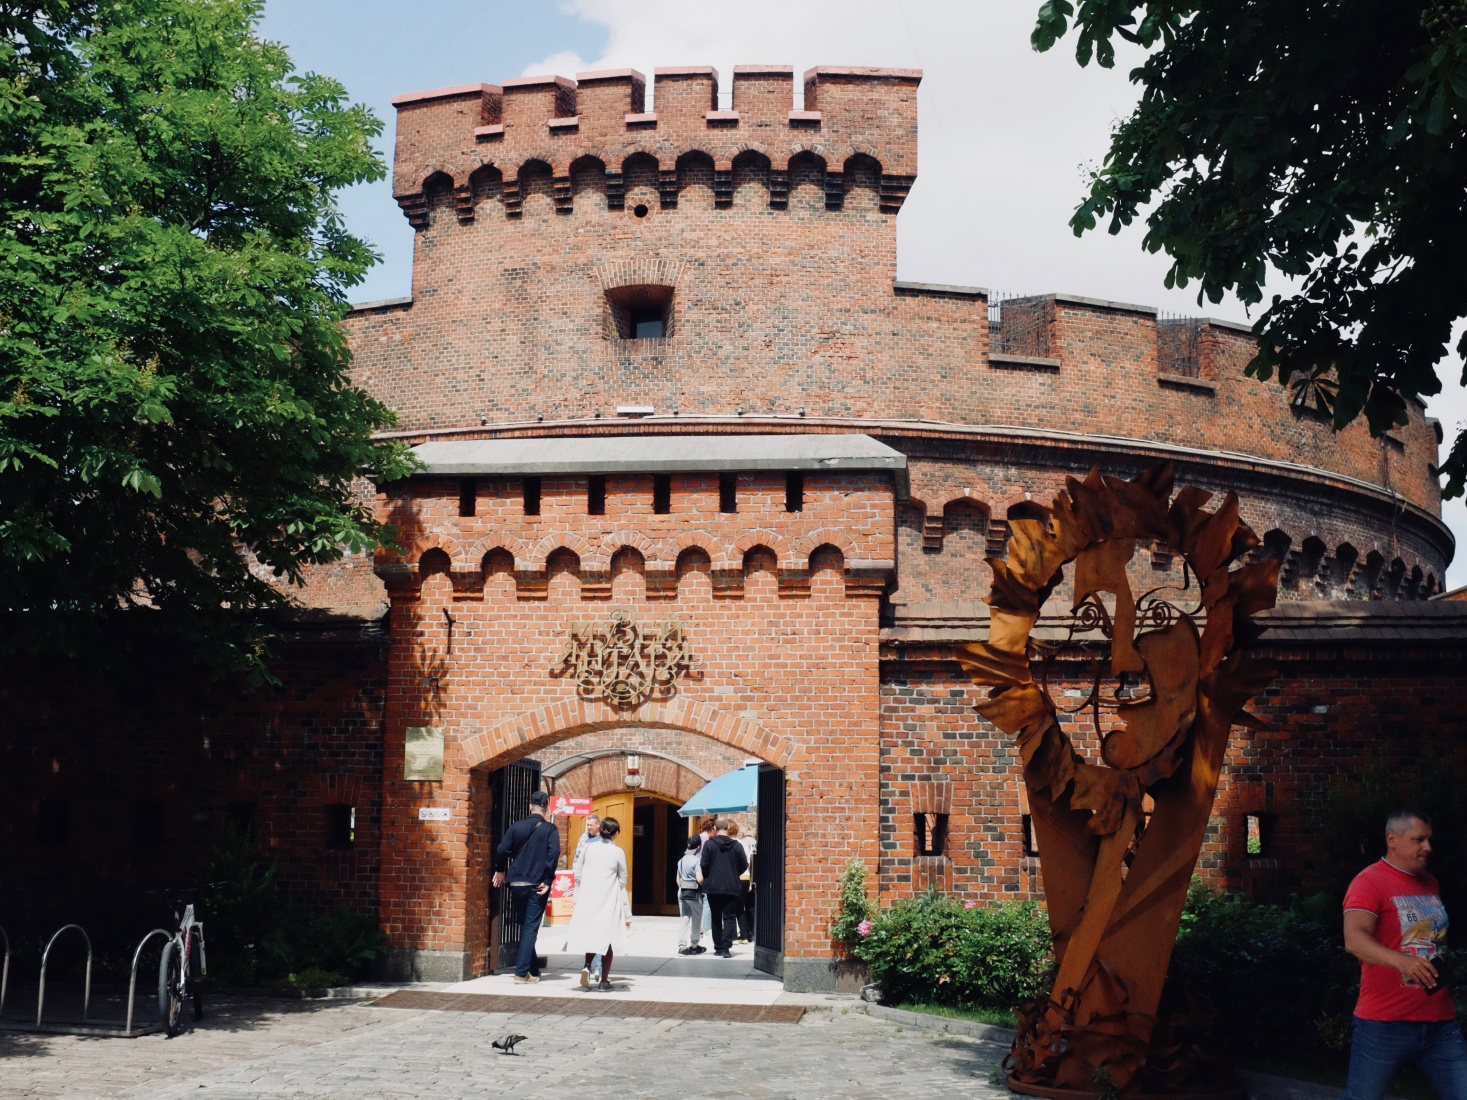 Red-brick Dohna Tower, part of Prussian Rossgarten Gate, now housing the Amber Museum, in Kaliningrad, Russia.